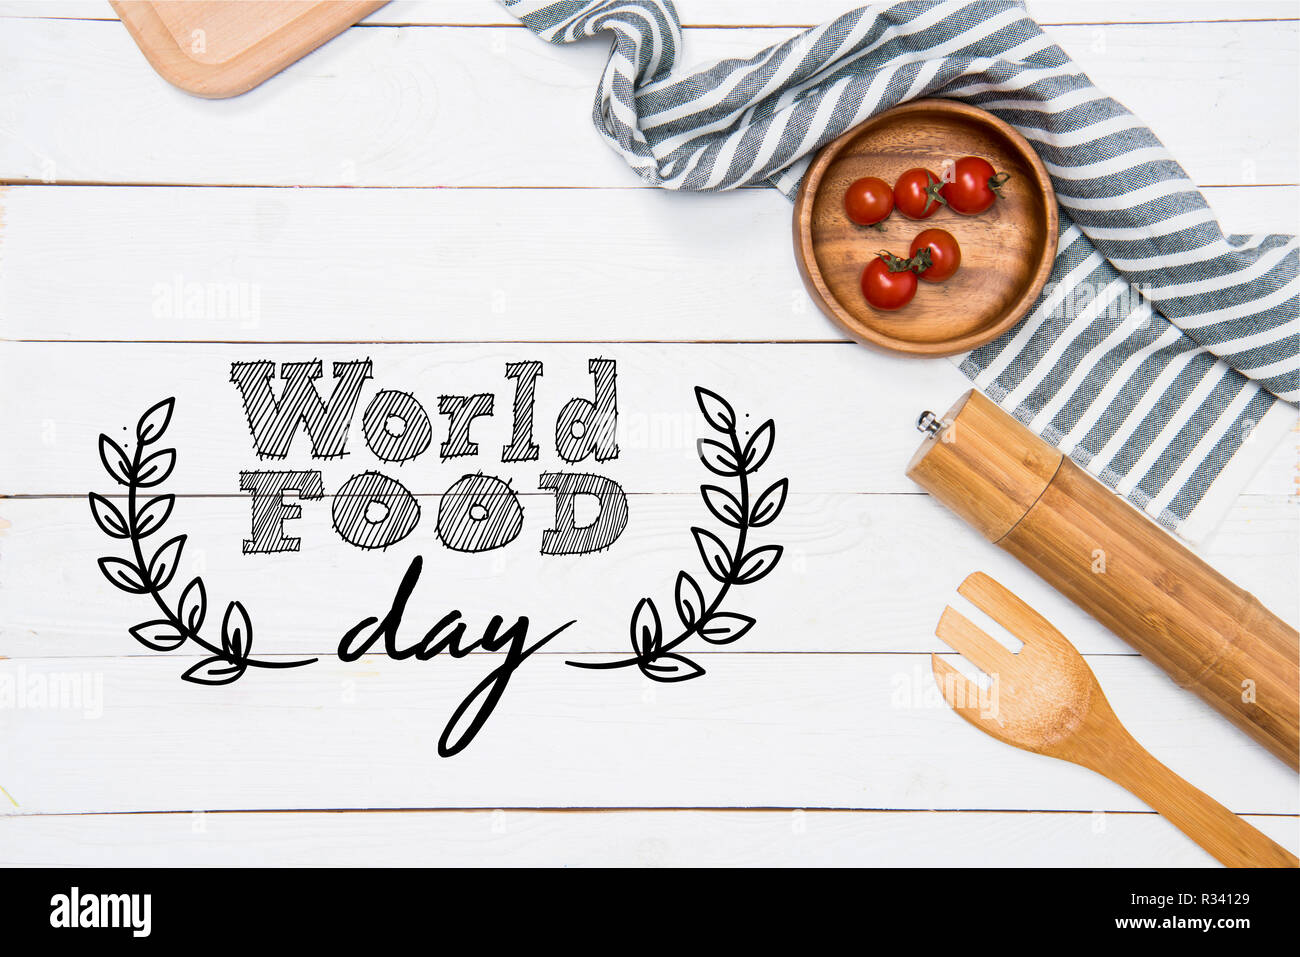 Cherry tomatoes with wooden spatula and salt grinder with table cloth on tabletop, world food day inscription - Stock Image